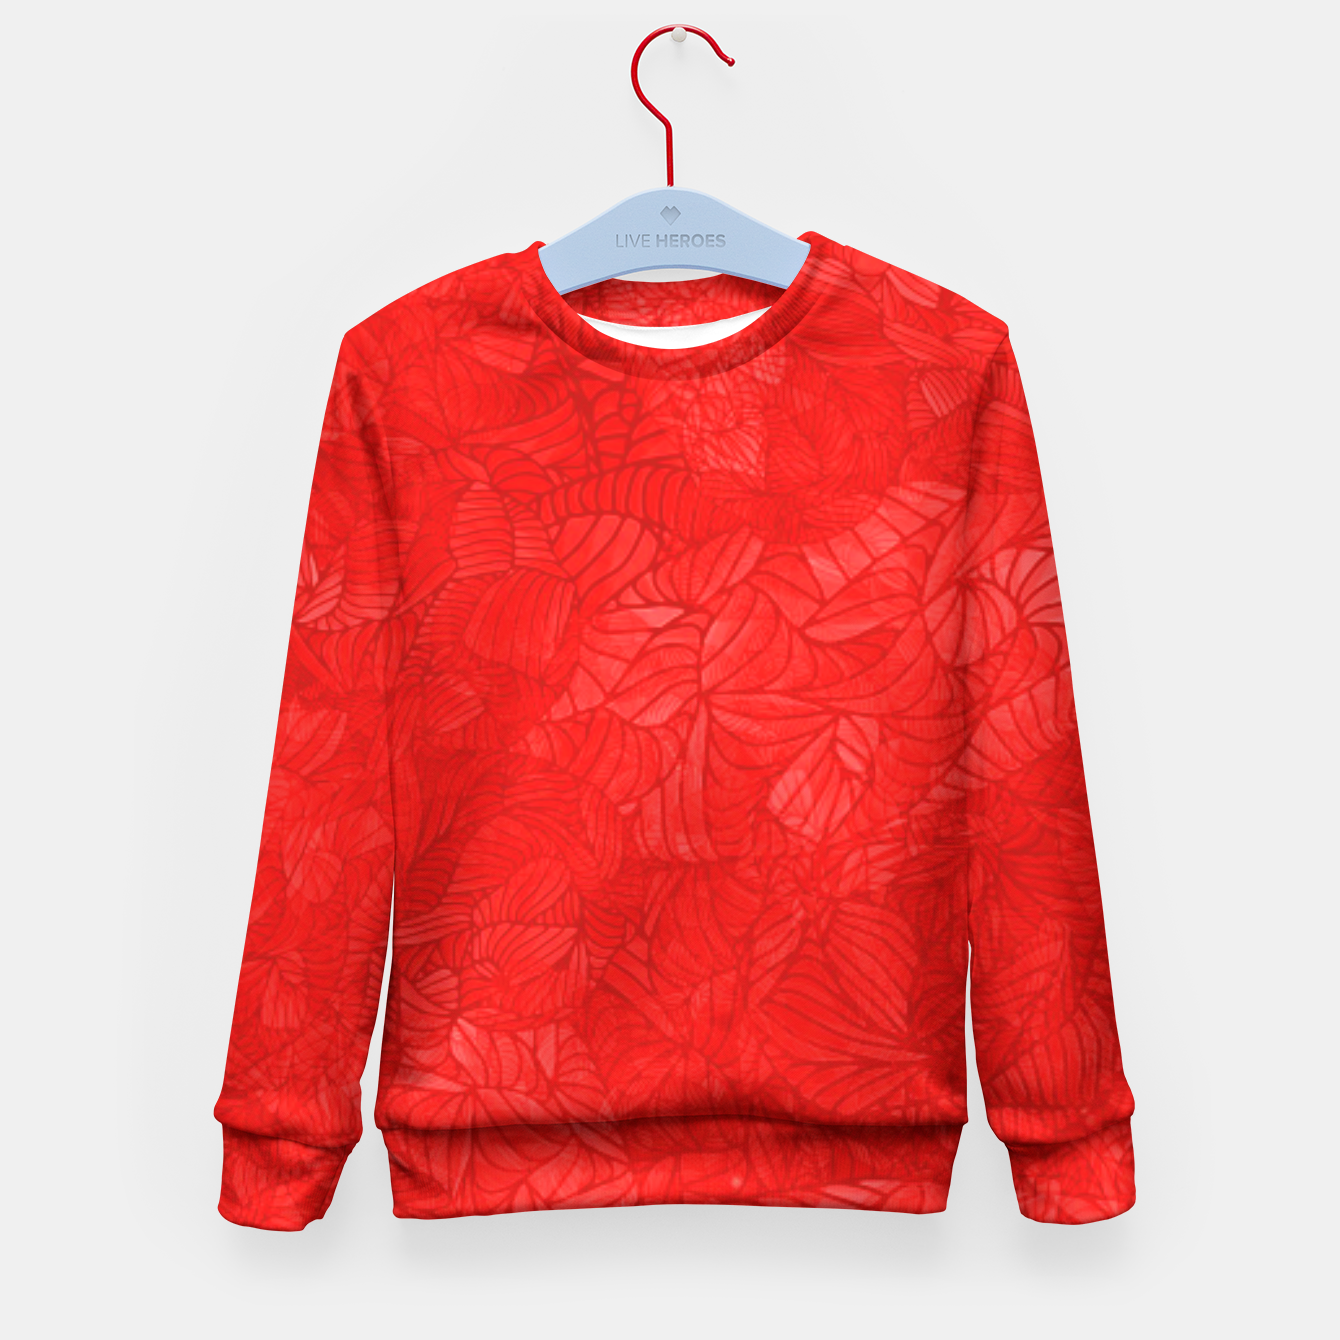 Image of red Kid's Sweater - Live Heroes